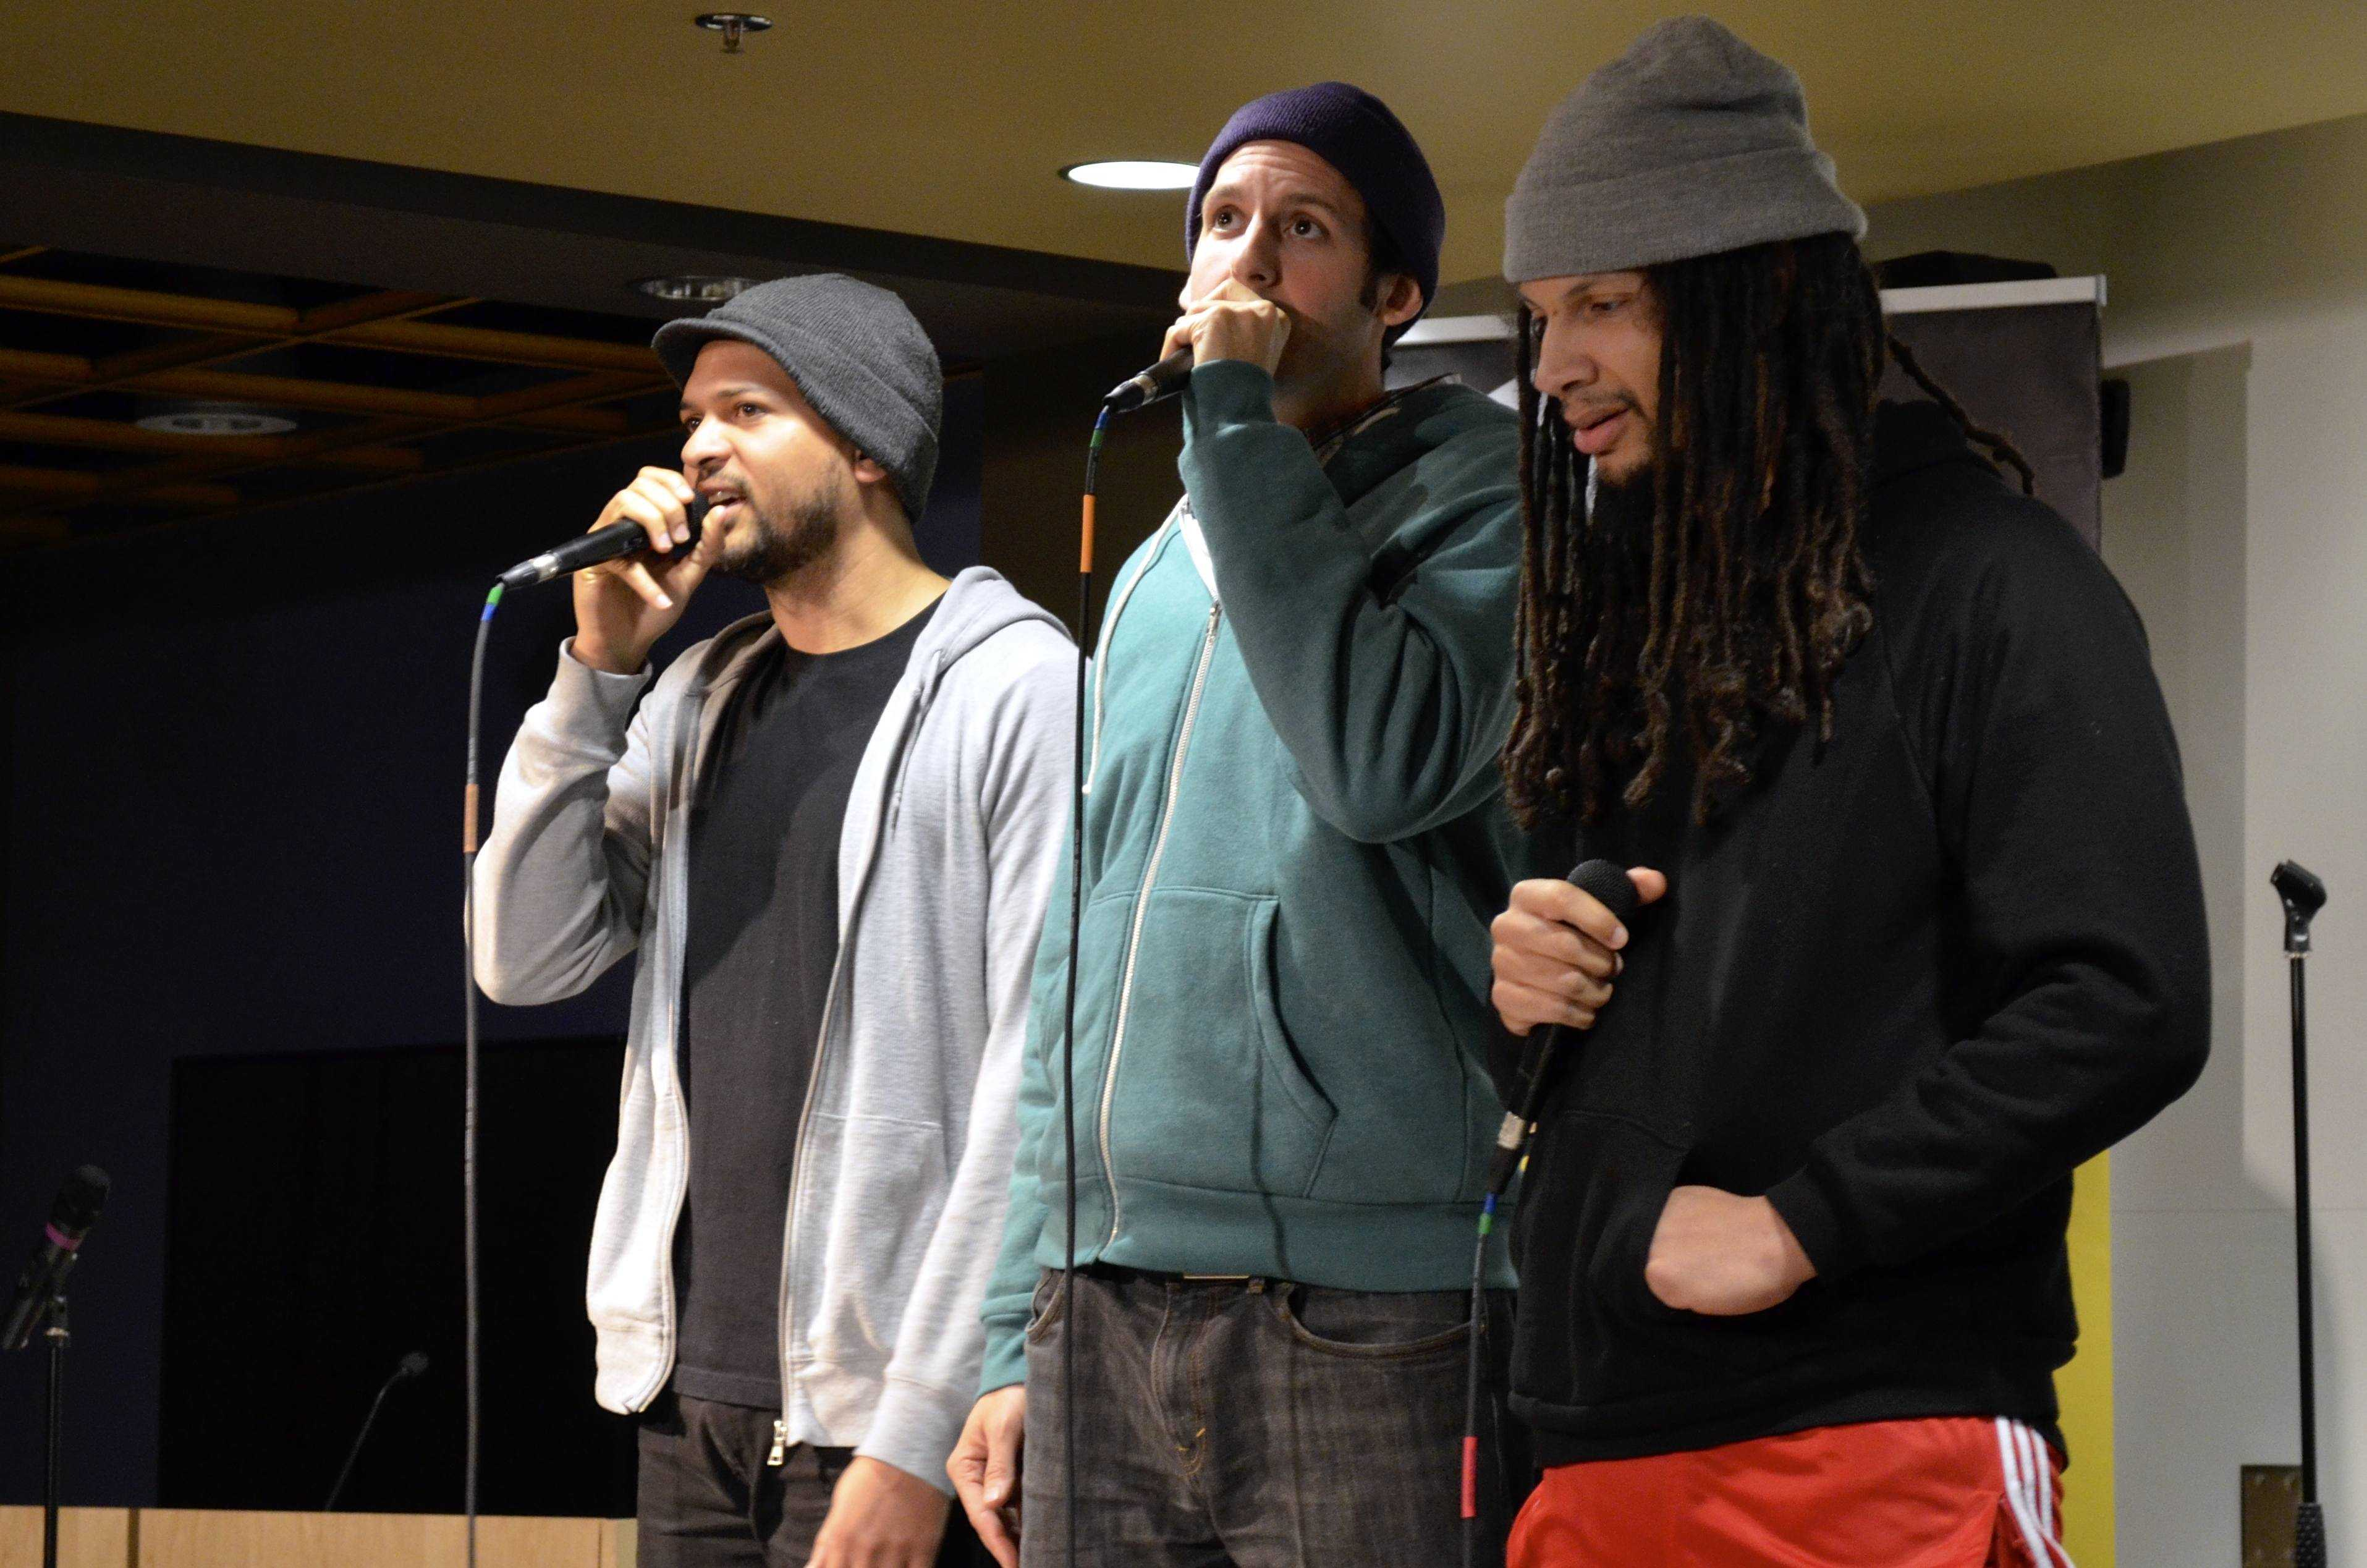 The Mayhem Poets took the stage at NKU this past week.